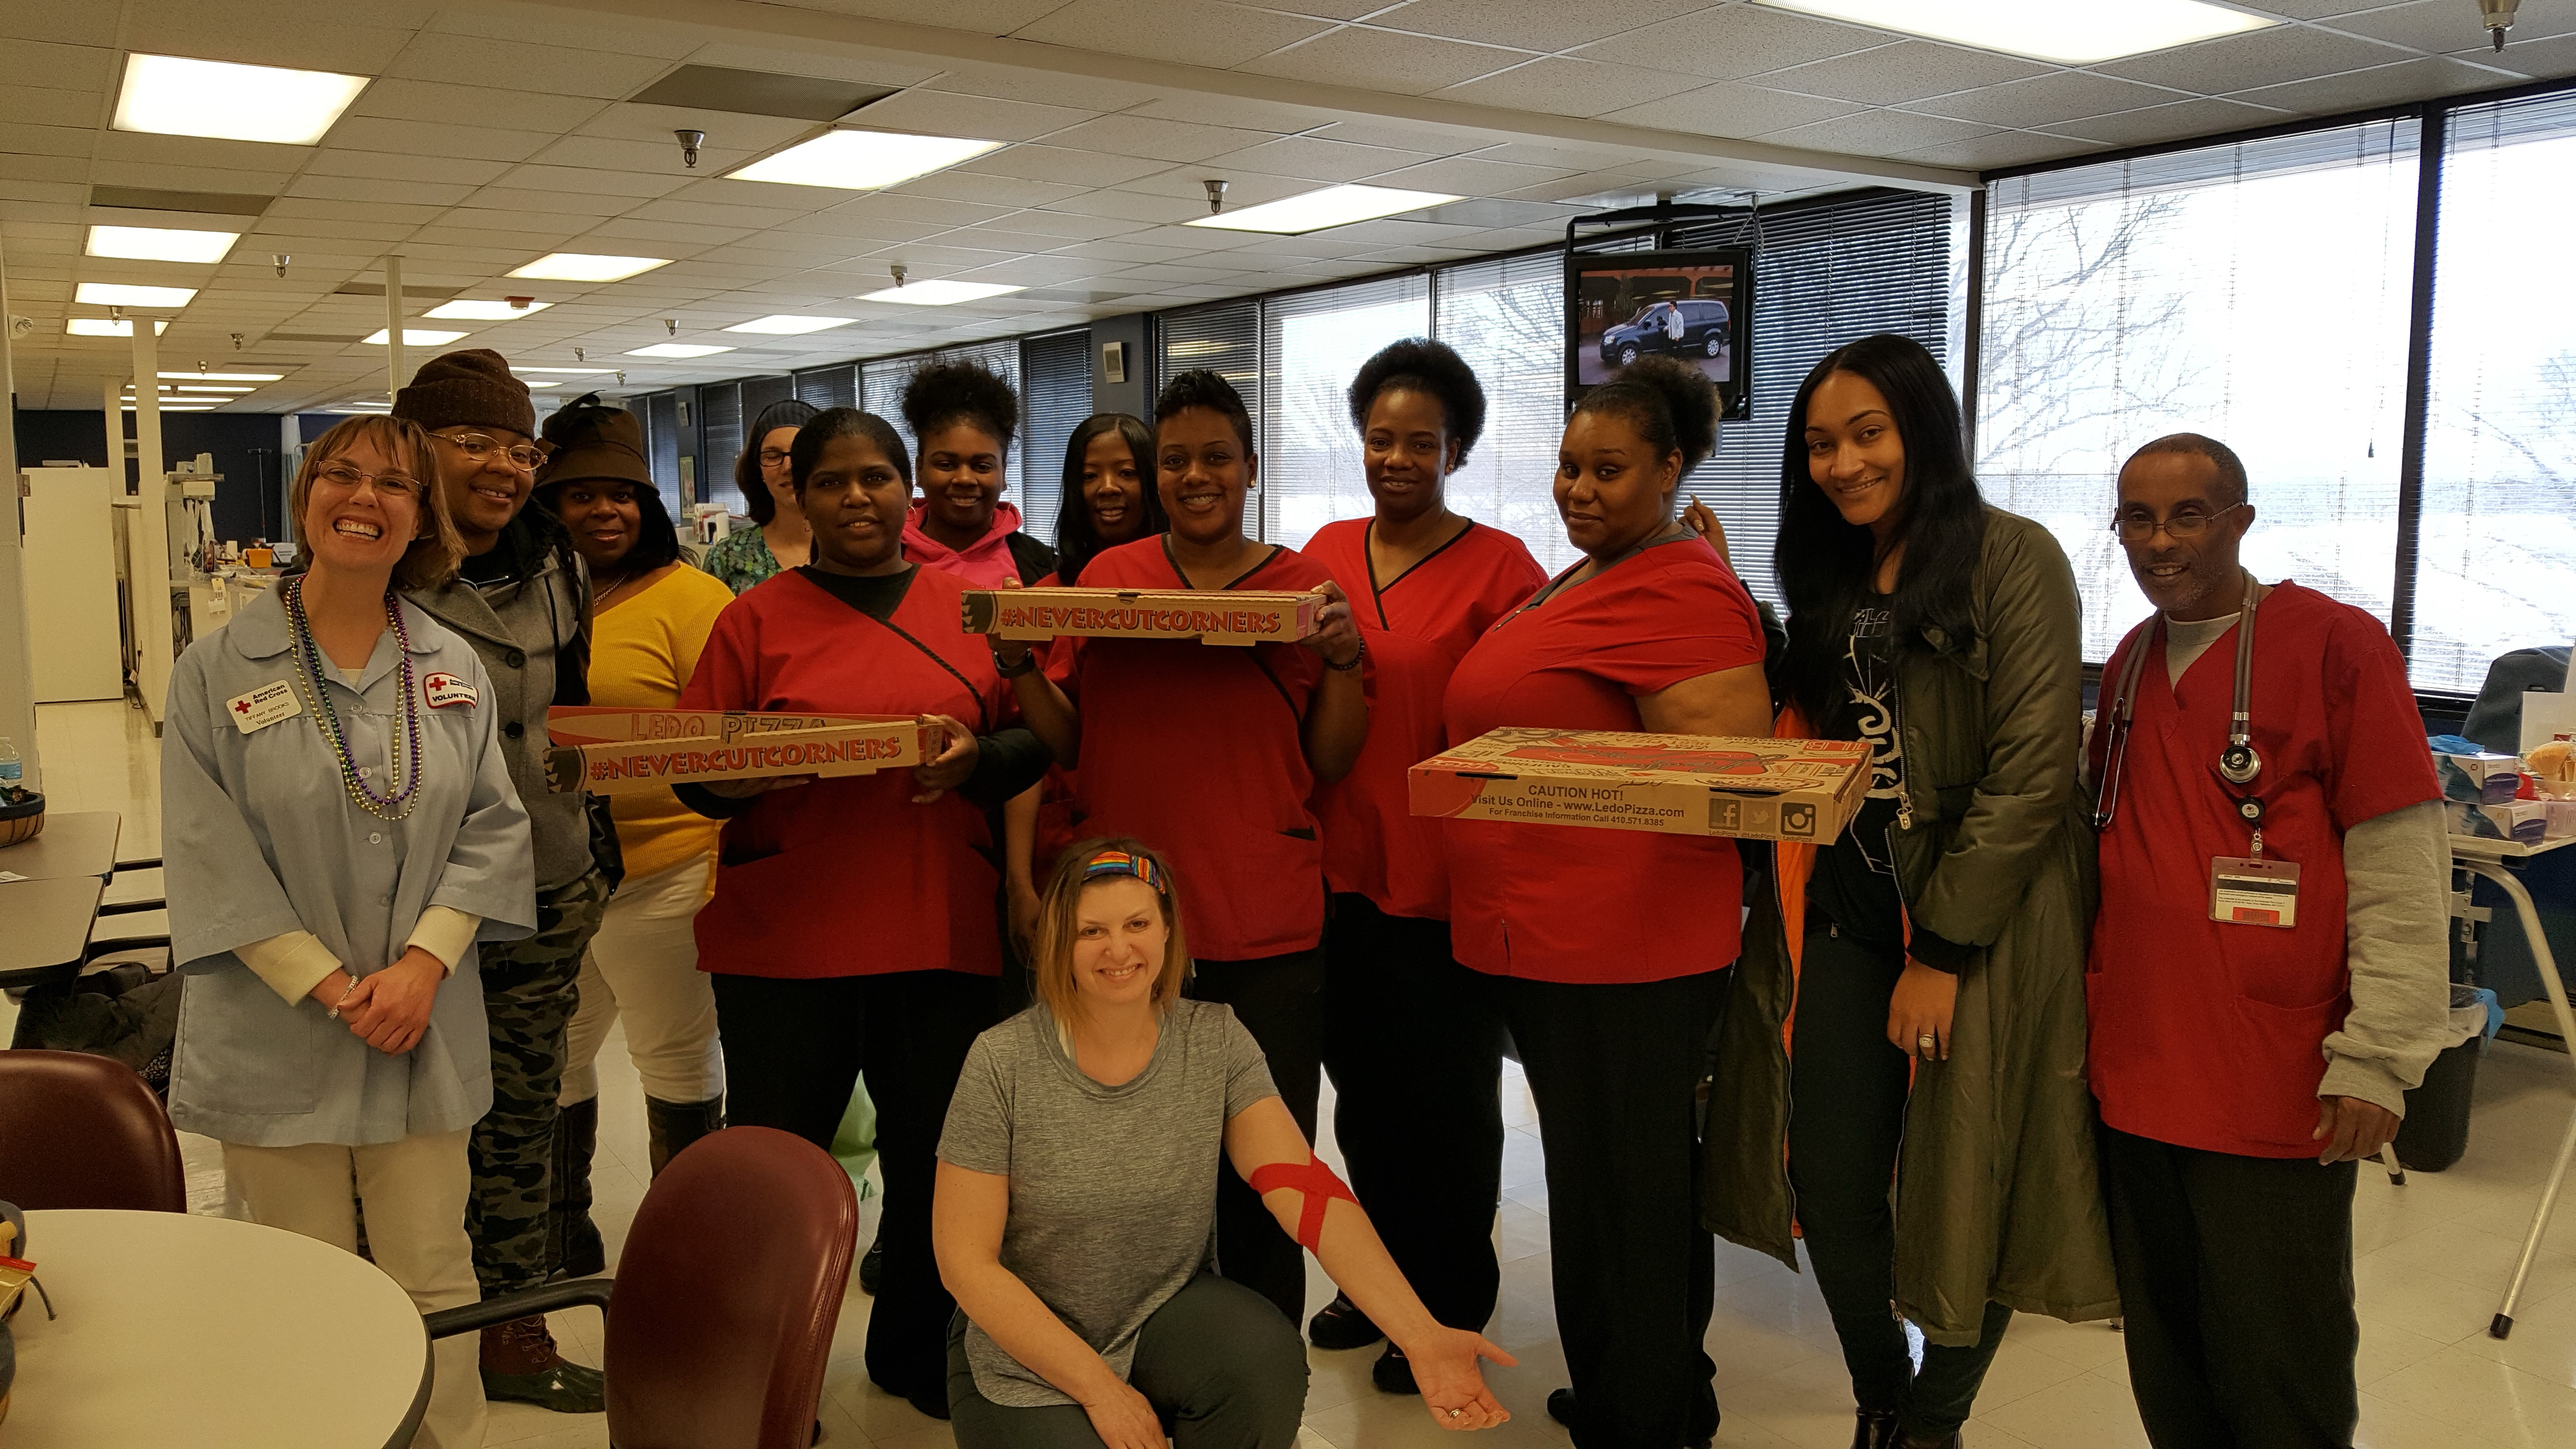 The Columbia Donation Center staff poses with Persia Nicole of the Ko Show and their Ledo's pizza.